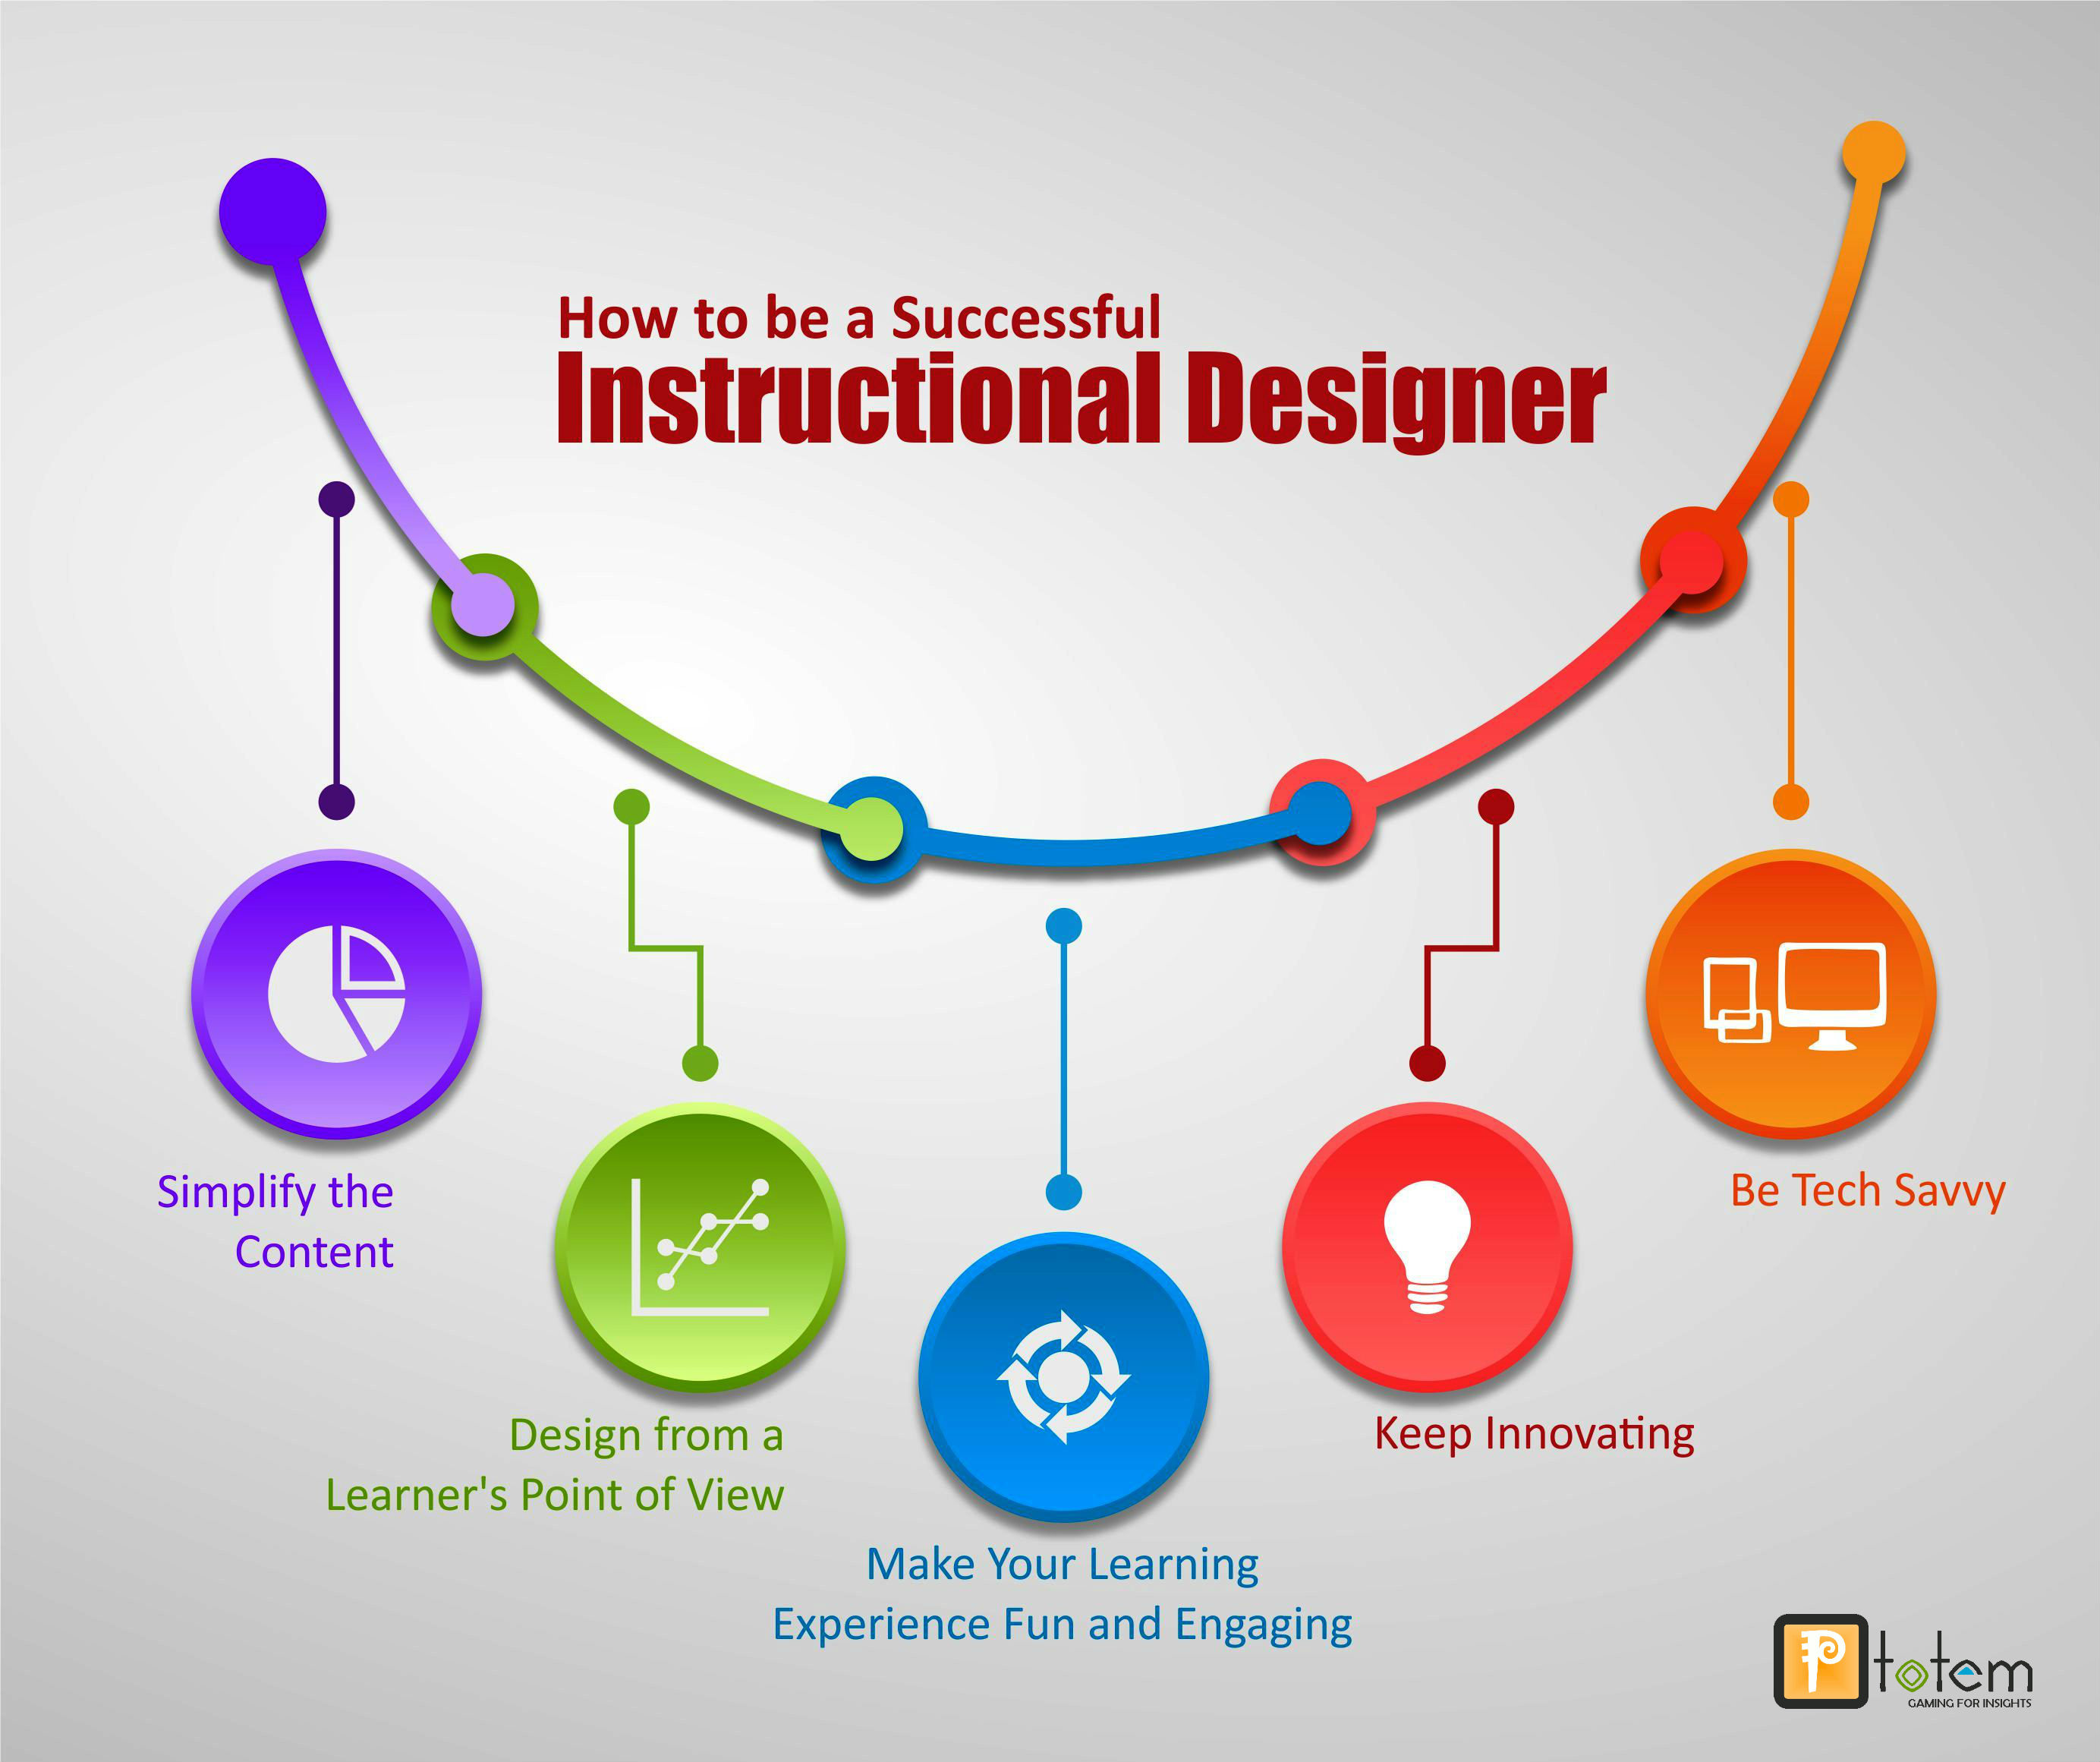 instructional design Ptotem Talk